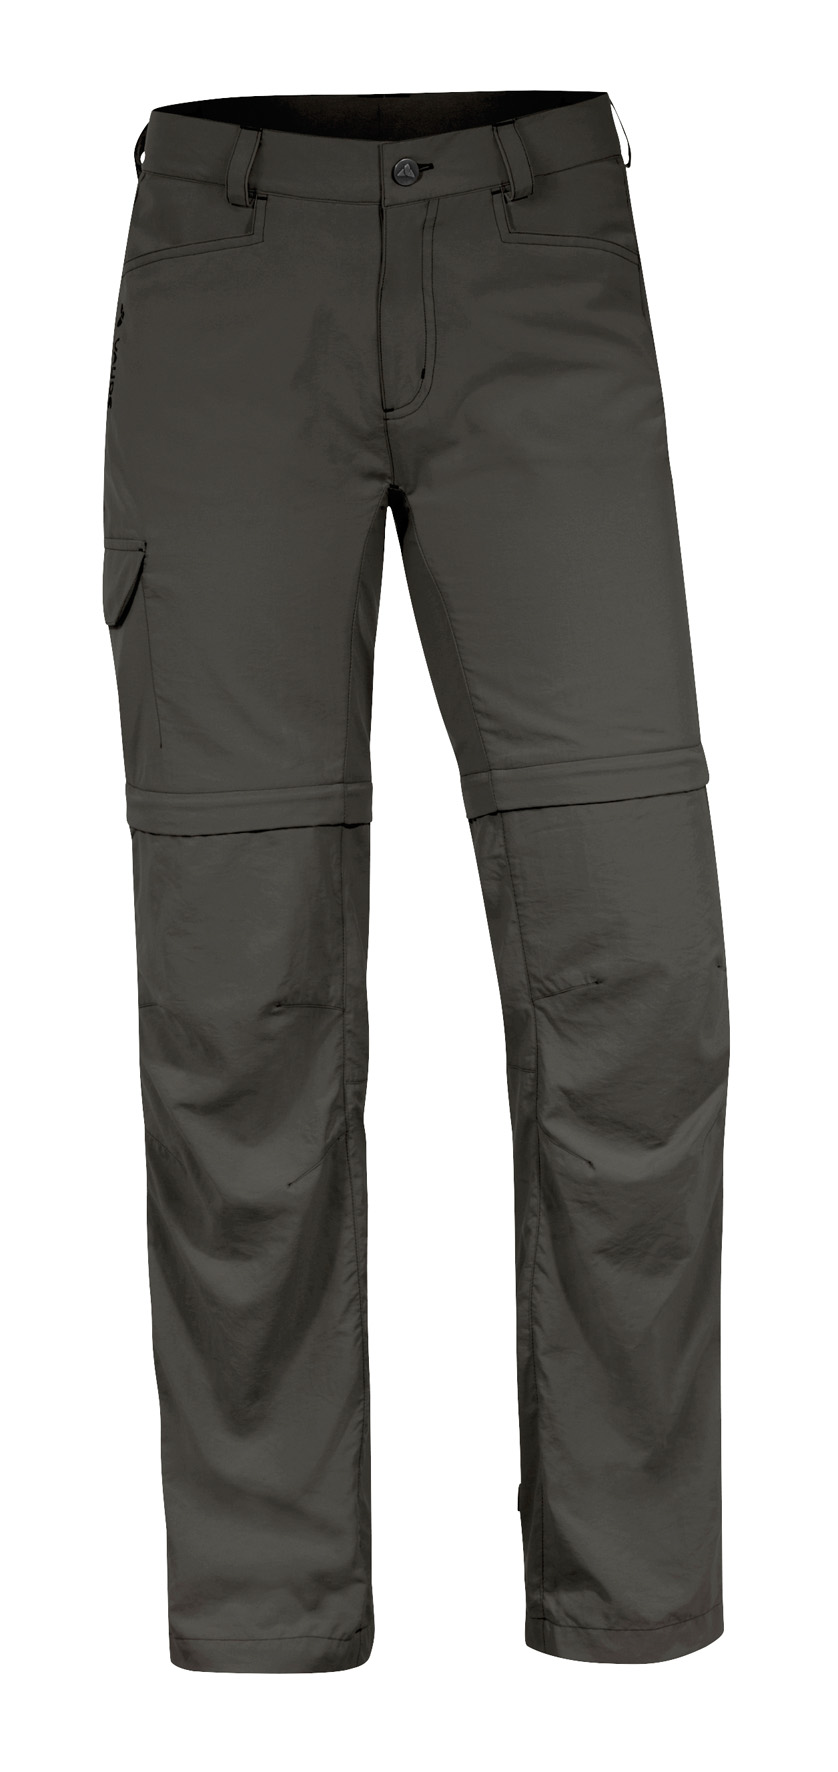 Women´s Lauca ZO Pants fir green Größe 36 - schneider-sports